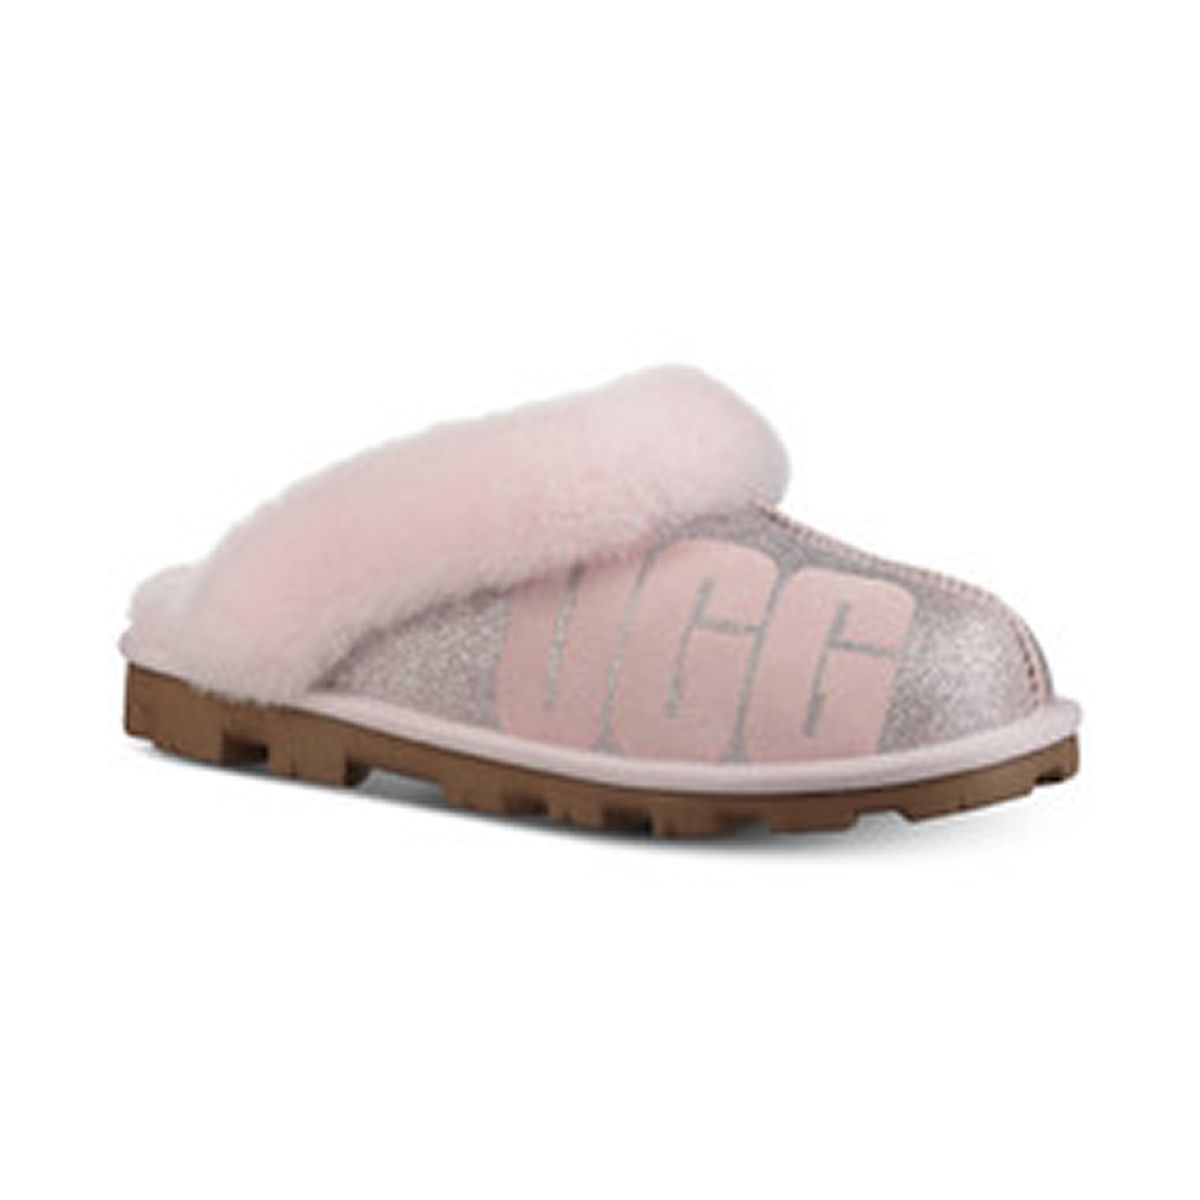 fce8f450407 UGG® Women's Slippers - Macy's